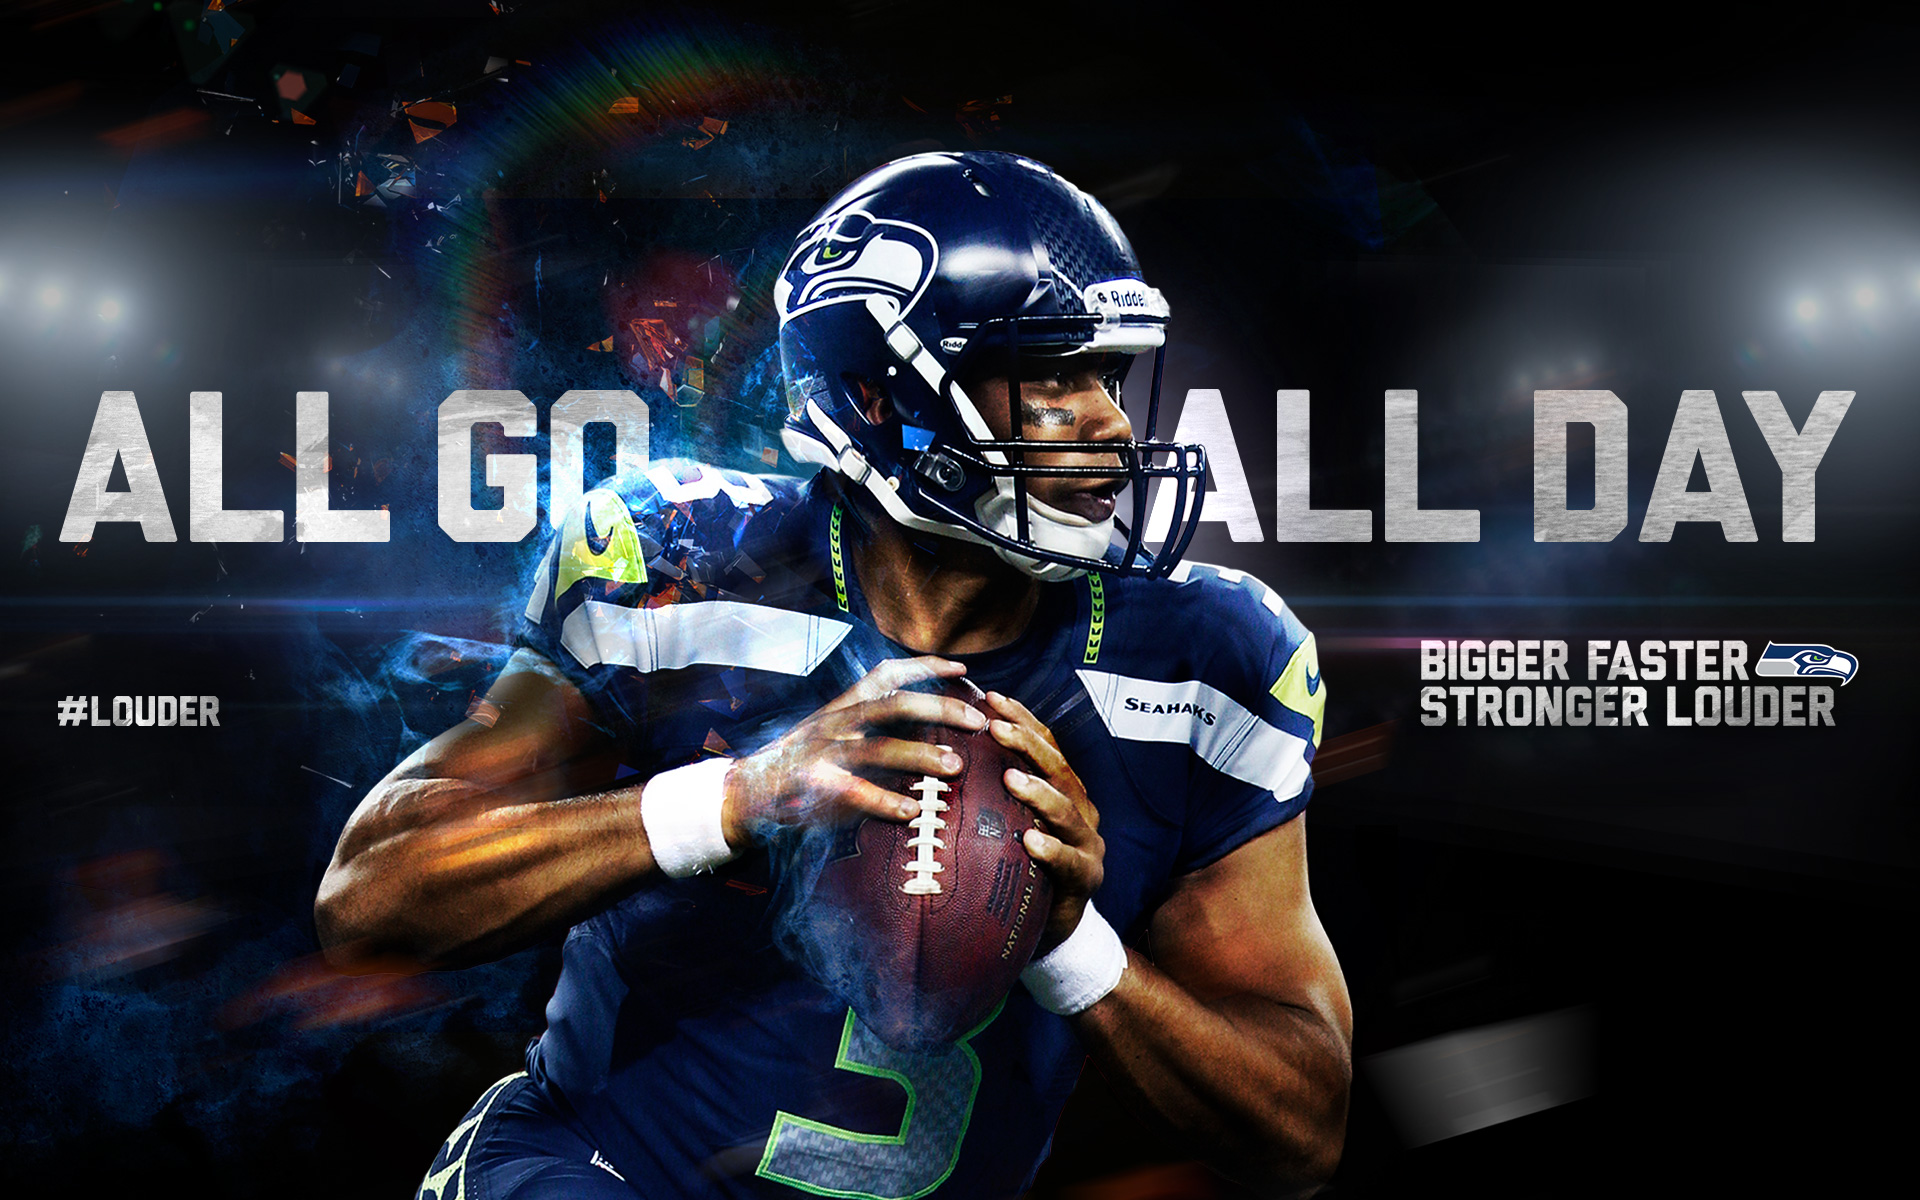 download seahawks nfl football desktop background images 1920x1200